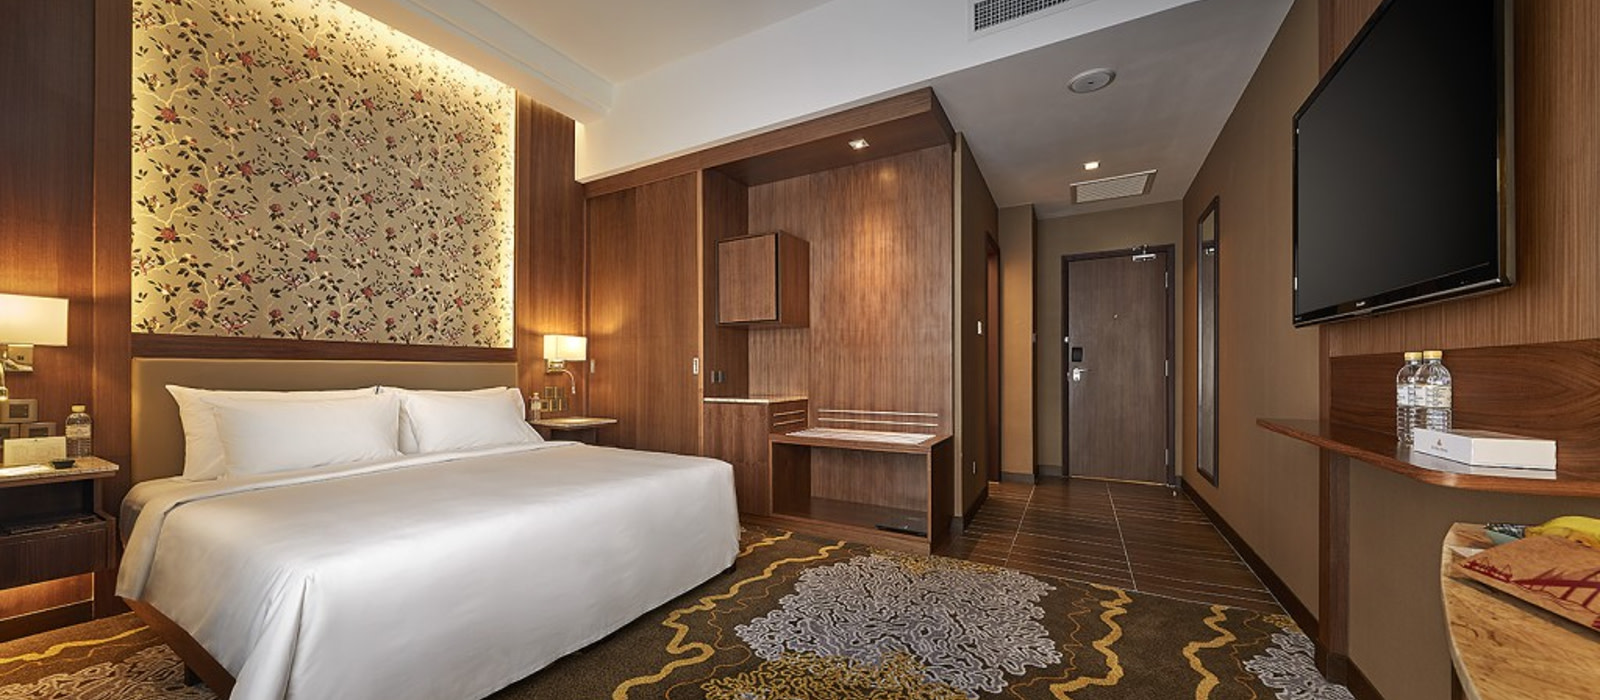 Hotel The Wembley – A St Giles  Malaysia